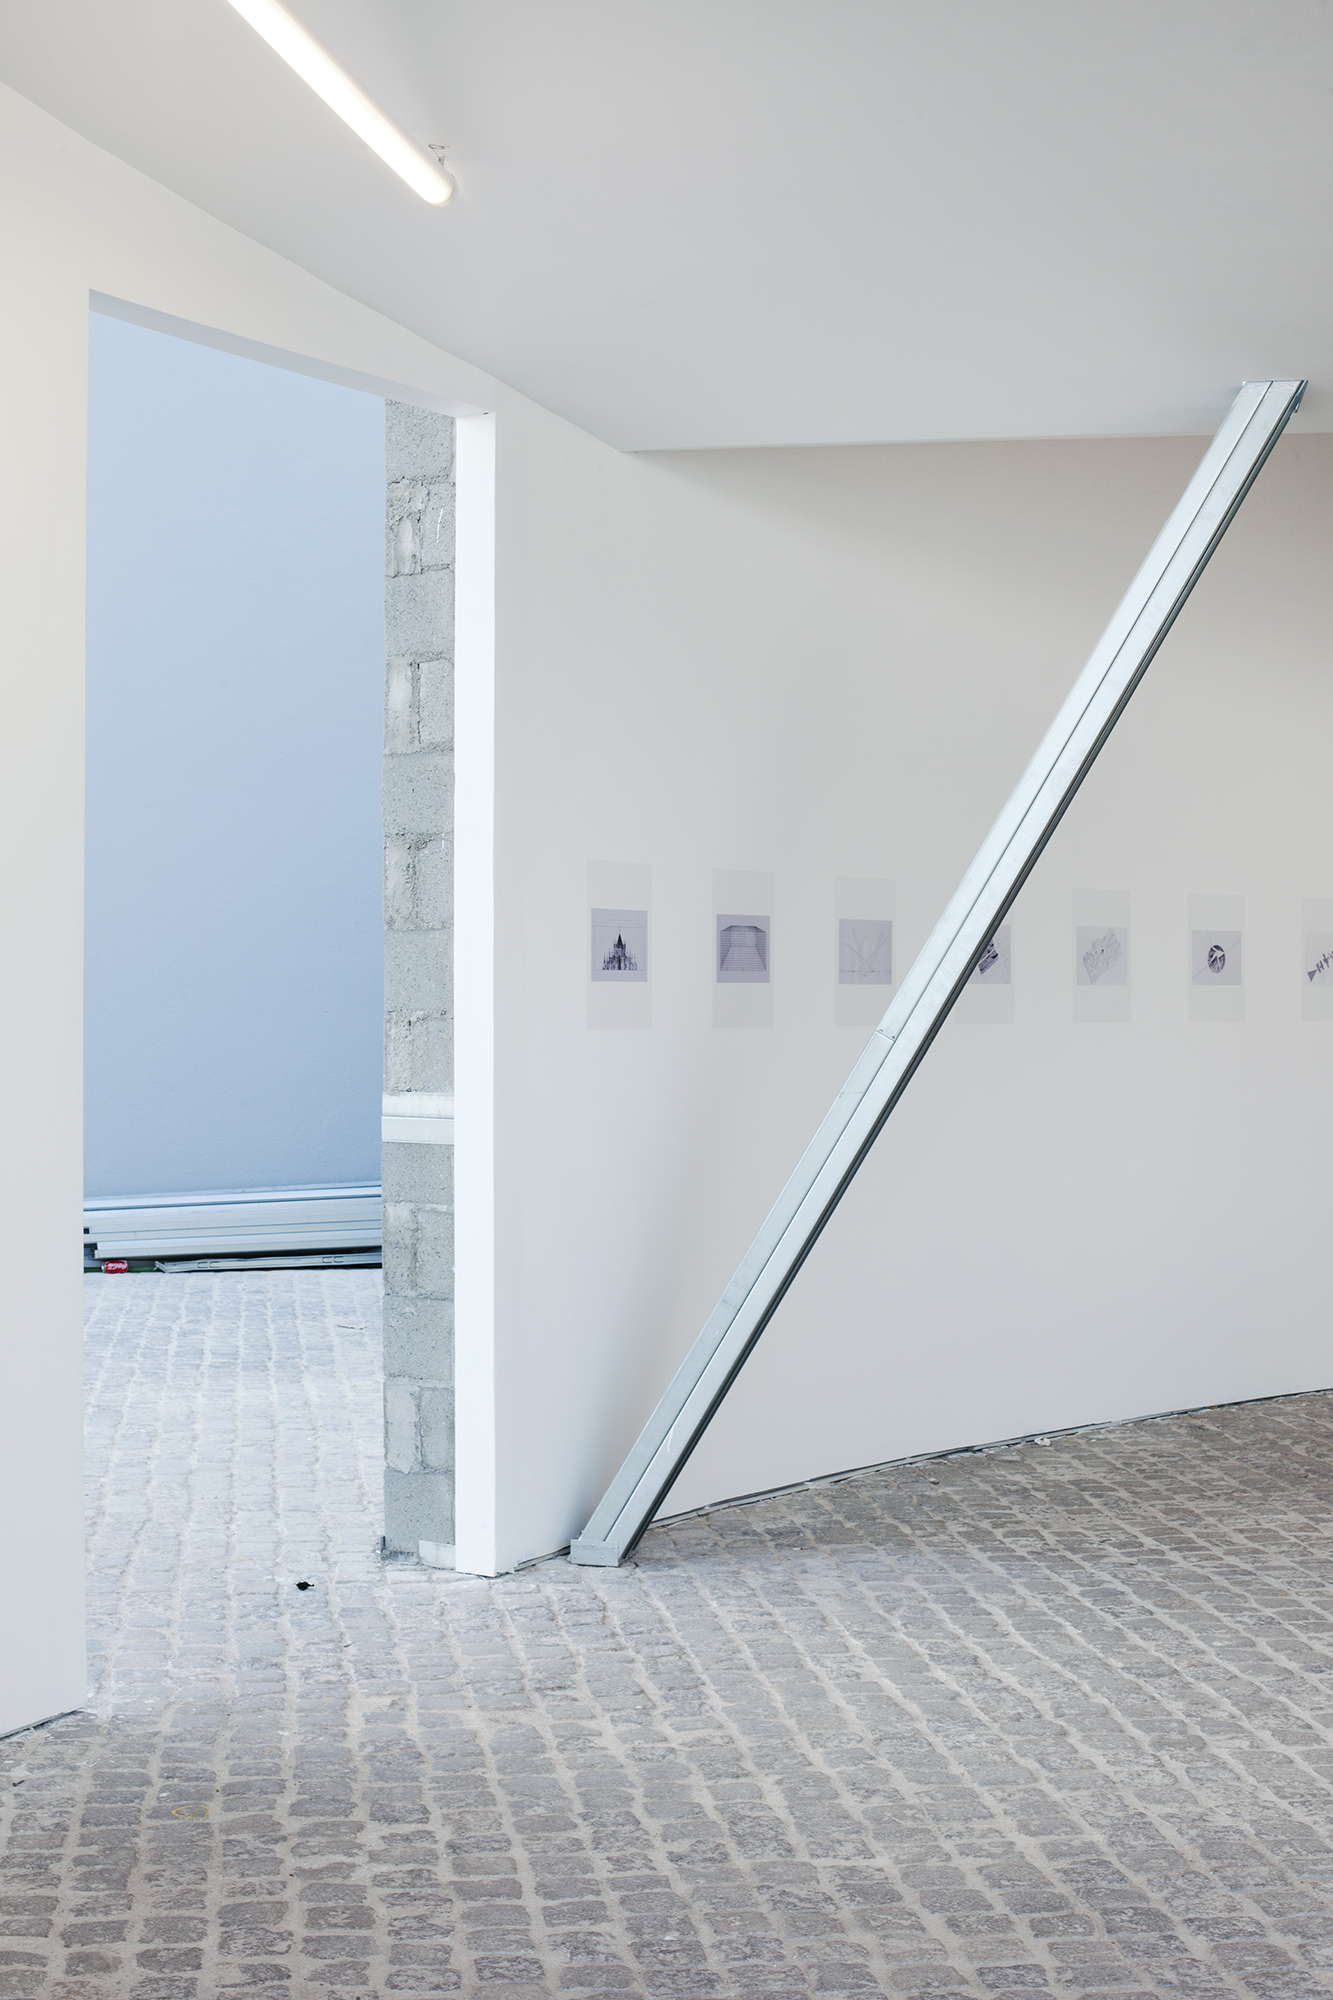 The Form of Form, exhibition, curated by Diogo Seixas Lopes, MAAT, © Tiago Casanova